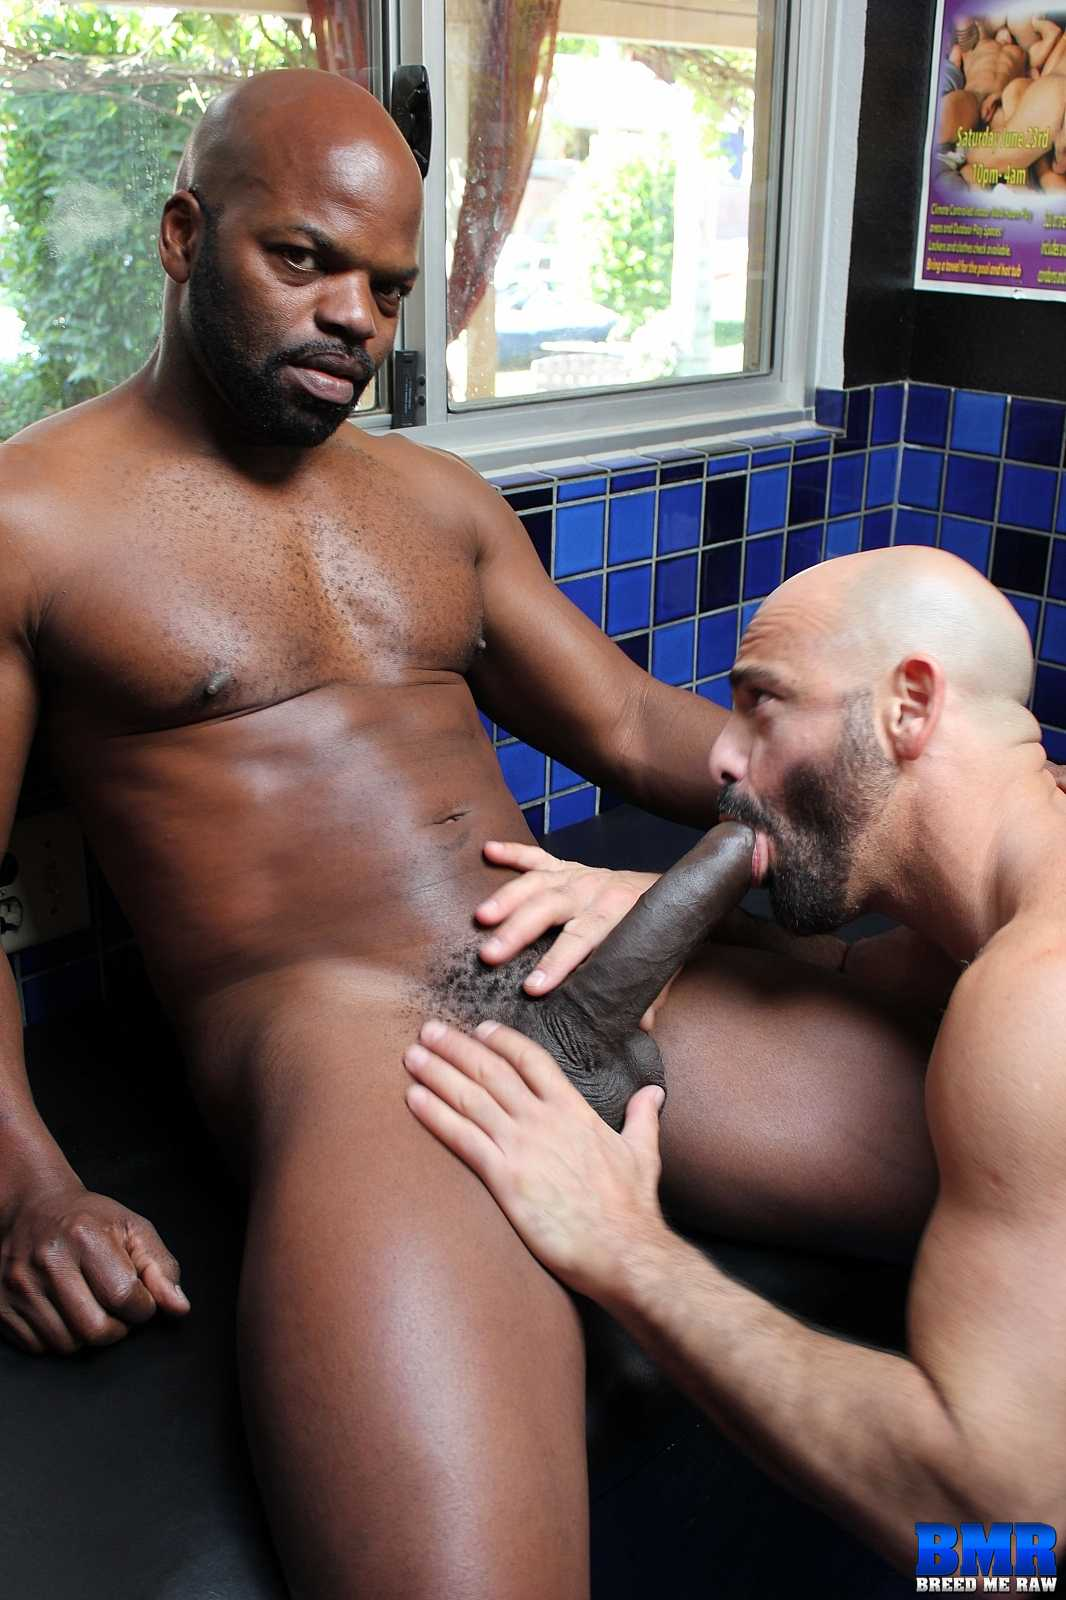 Adam Ruso Porn cutler x and adam russo | breed me raw | gaymobile.fr